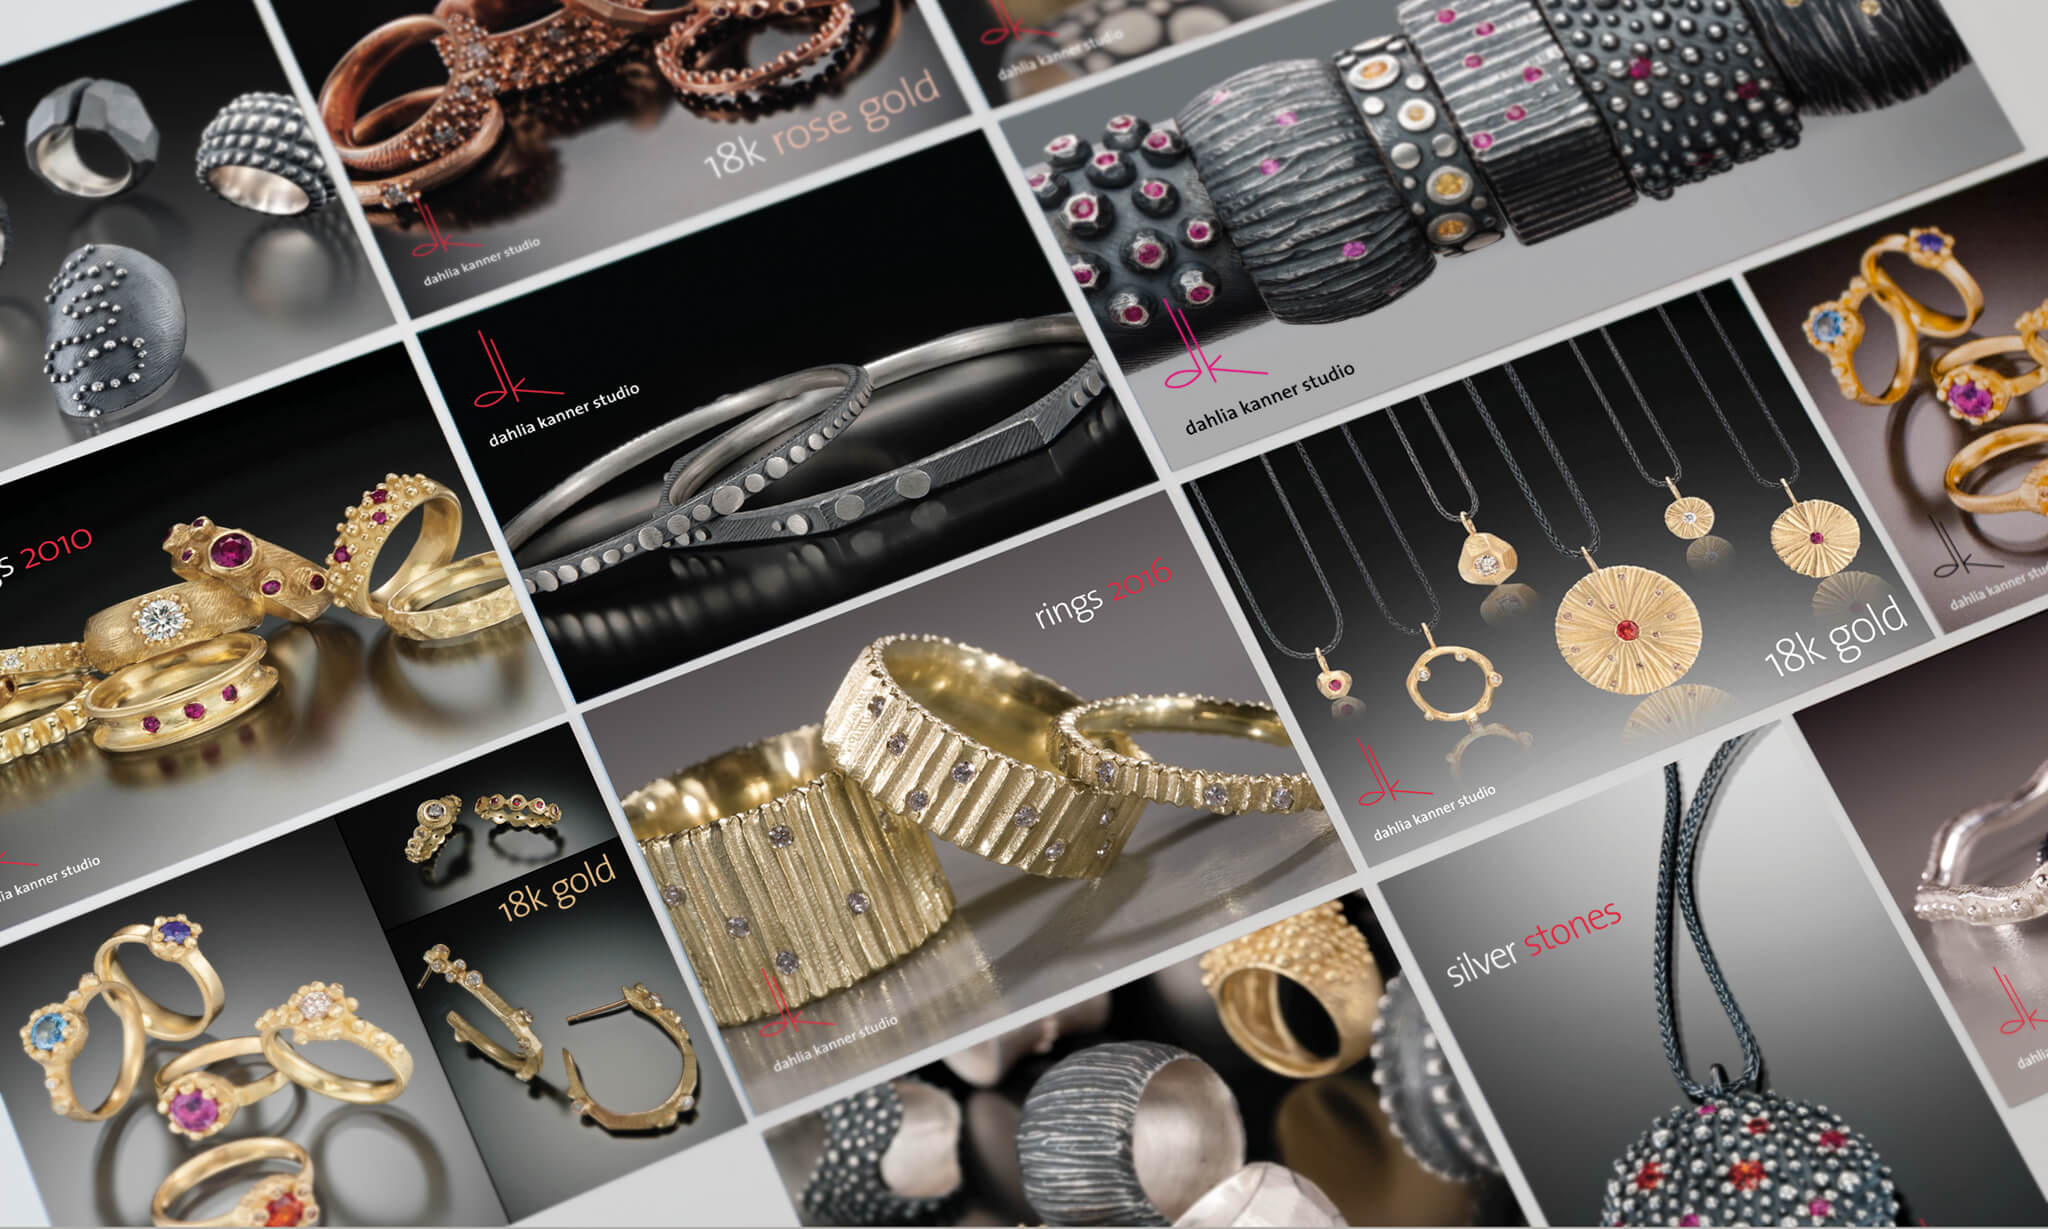 postcard designs for Dahlia Kanner's jewelry | Design by  ChrisAndAndy.com